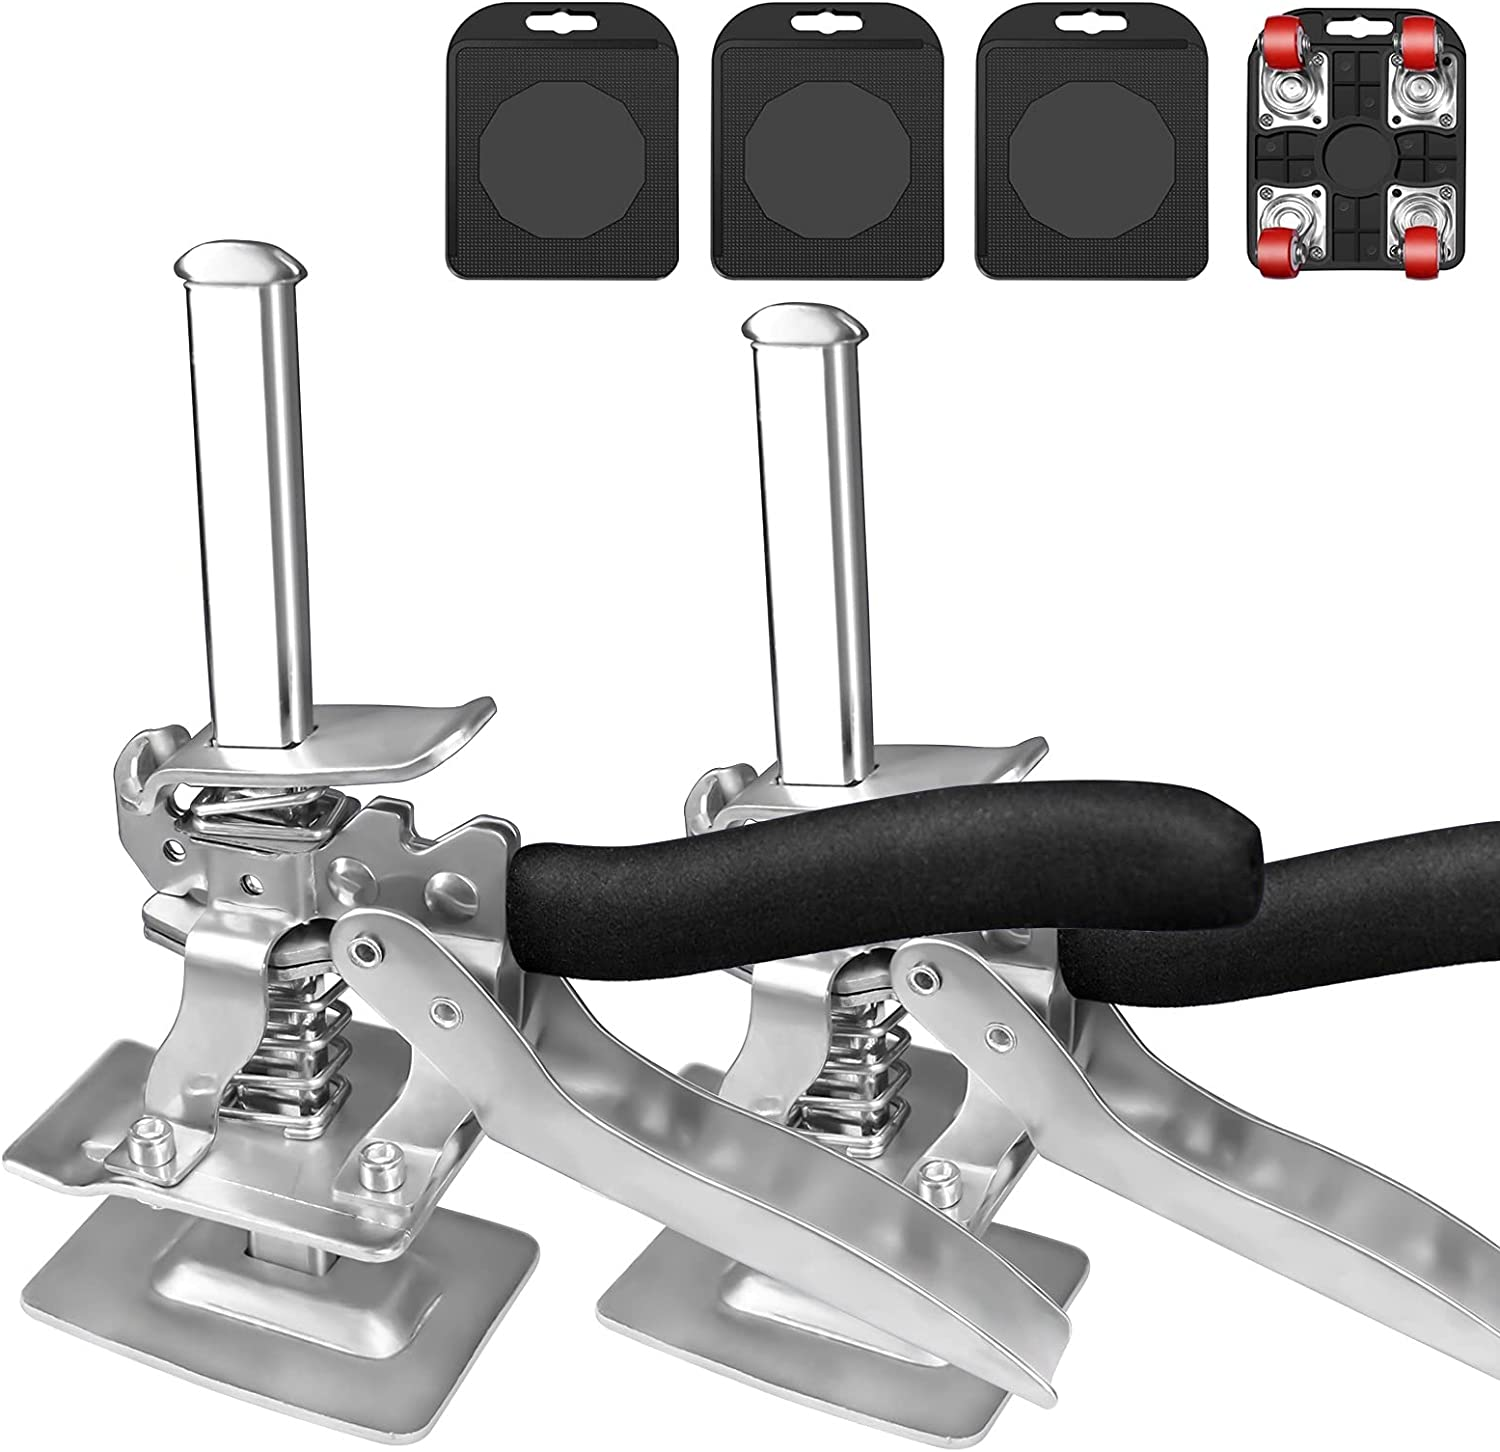 Beauty products 2 Furniture Jack Credence Lifter Kit with Slider 4 Conveniently for Movin